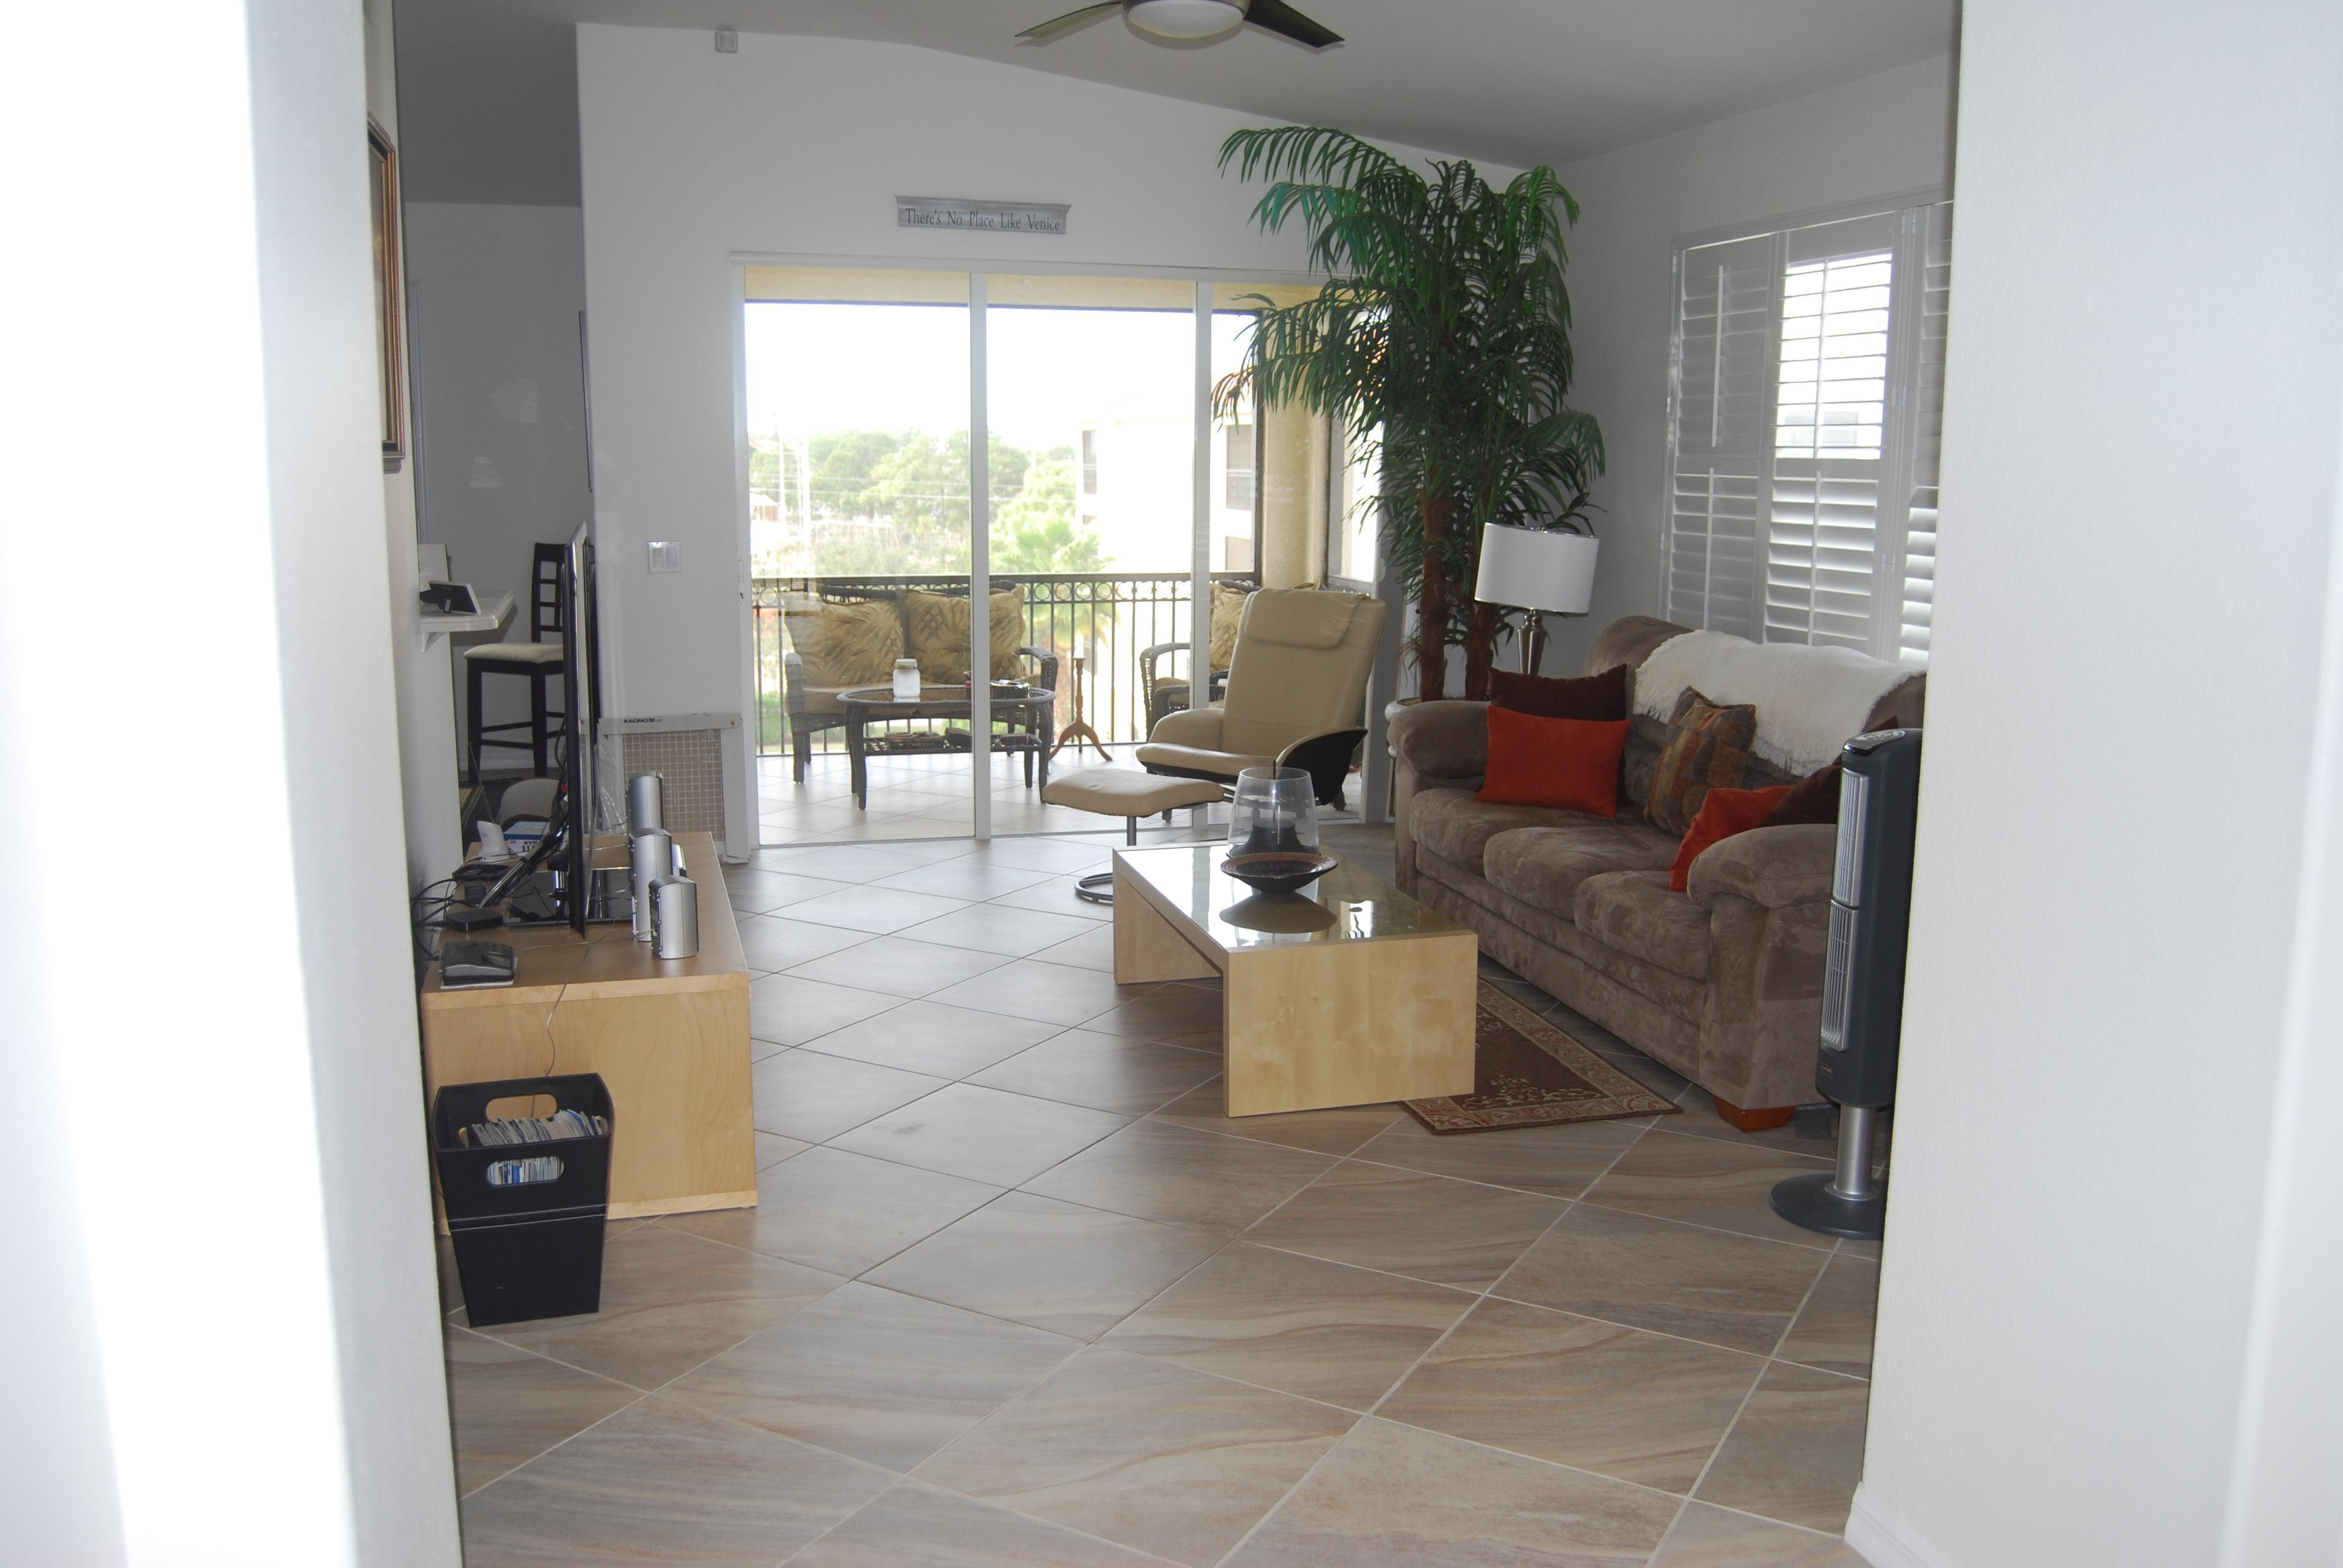 Flooring by tile experts inc 2041 12th street sarasota fl tile flooring by tile experts inc 2041 12th street sarasota fl tile ceramic contractors dealers mapquest dailygadgetfo Image collections